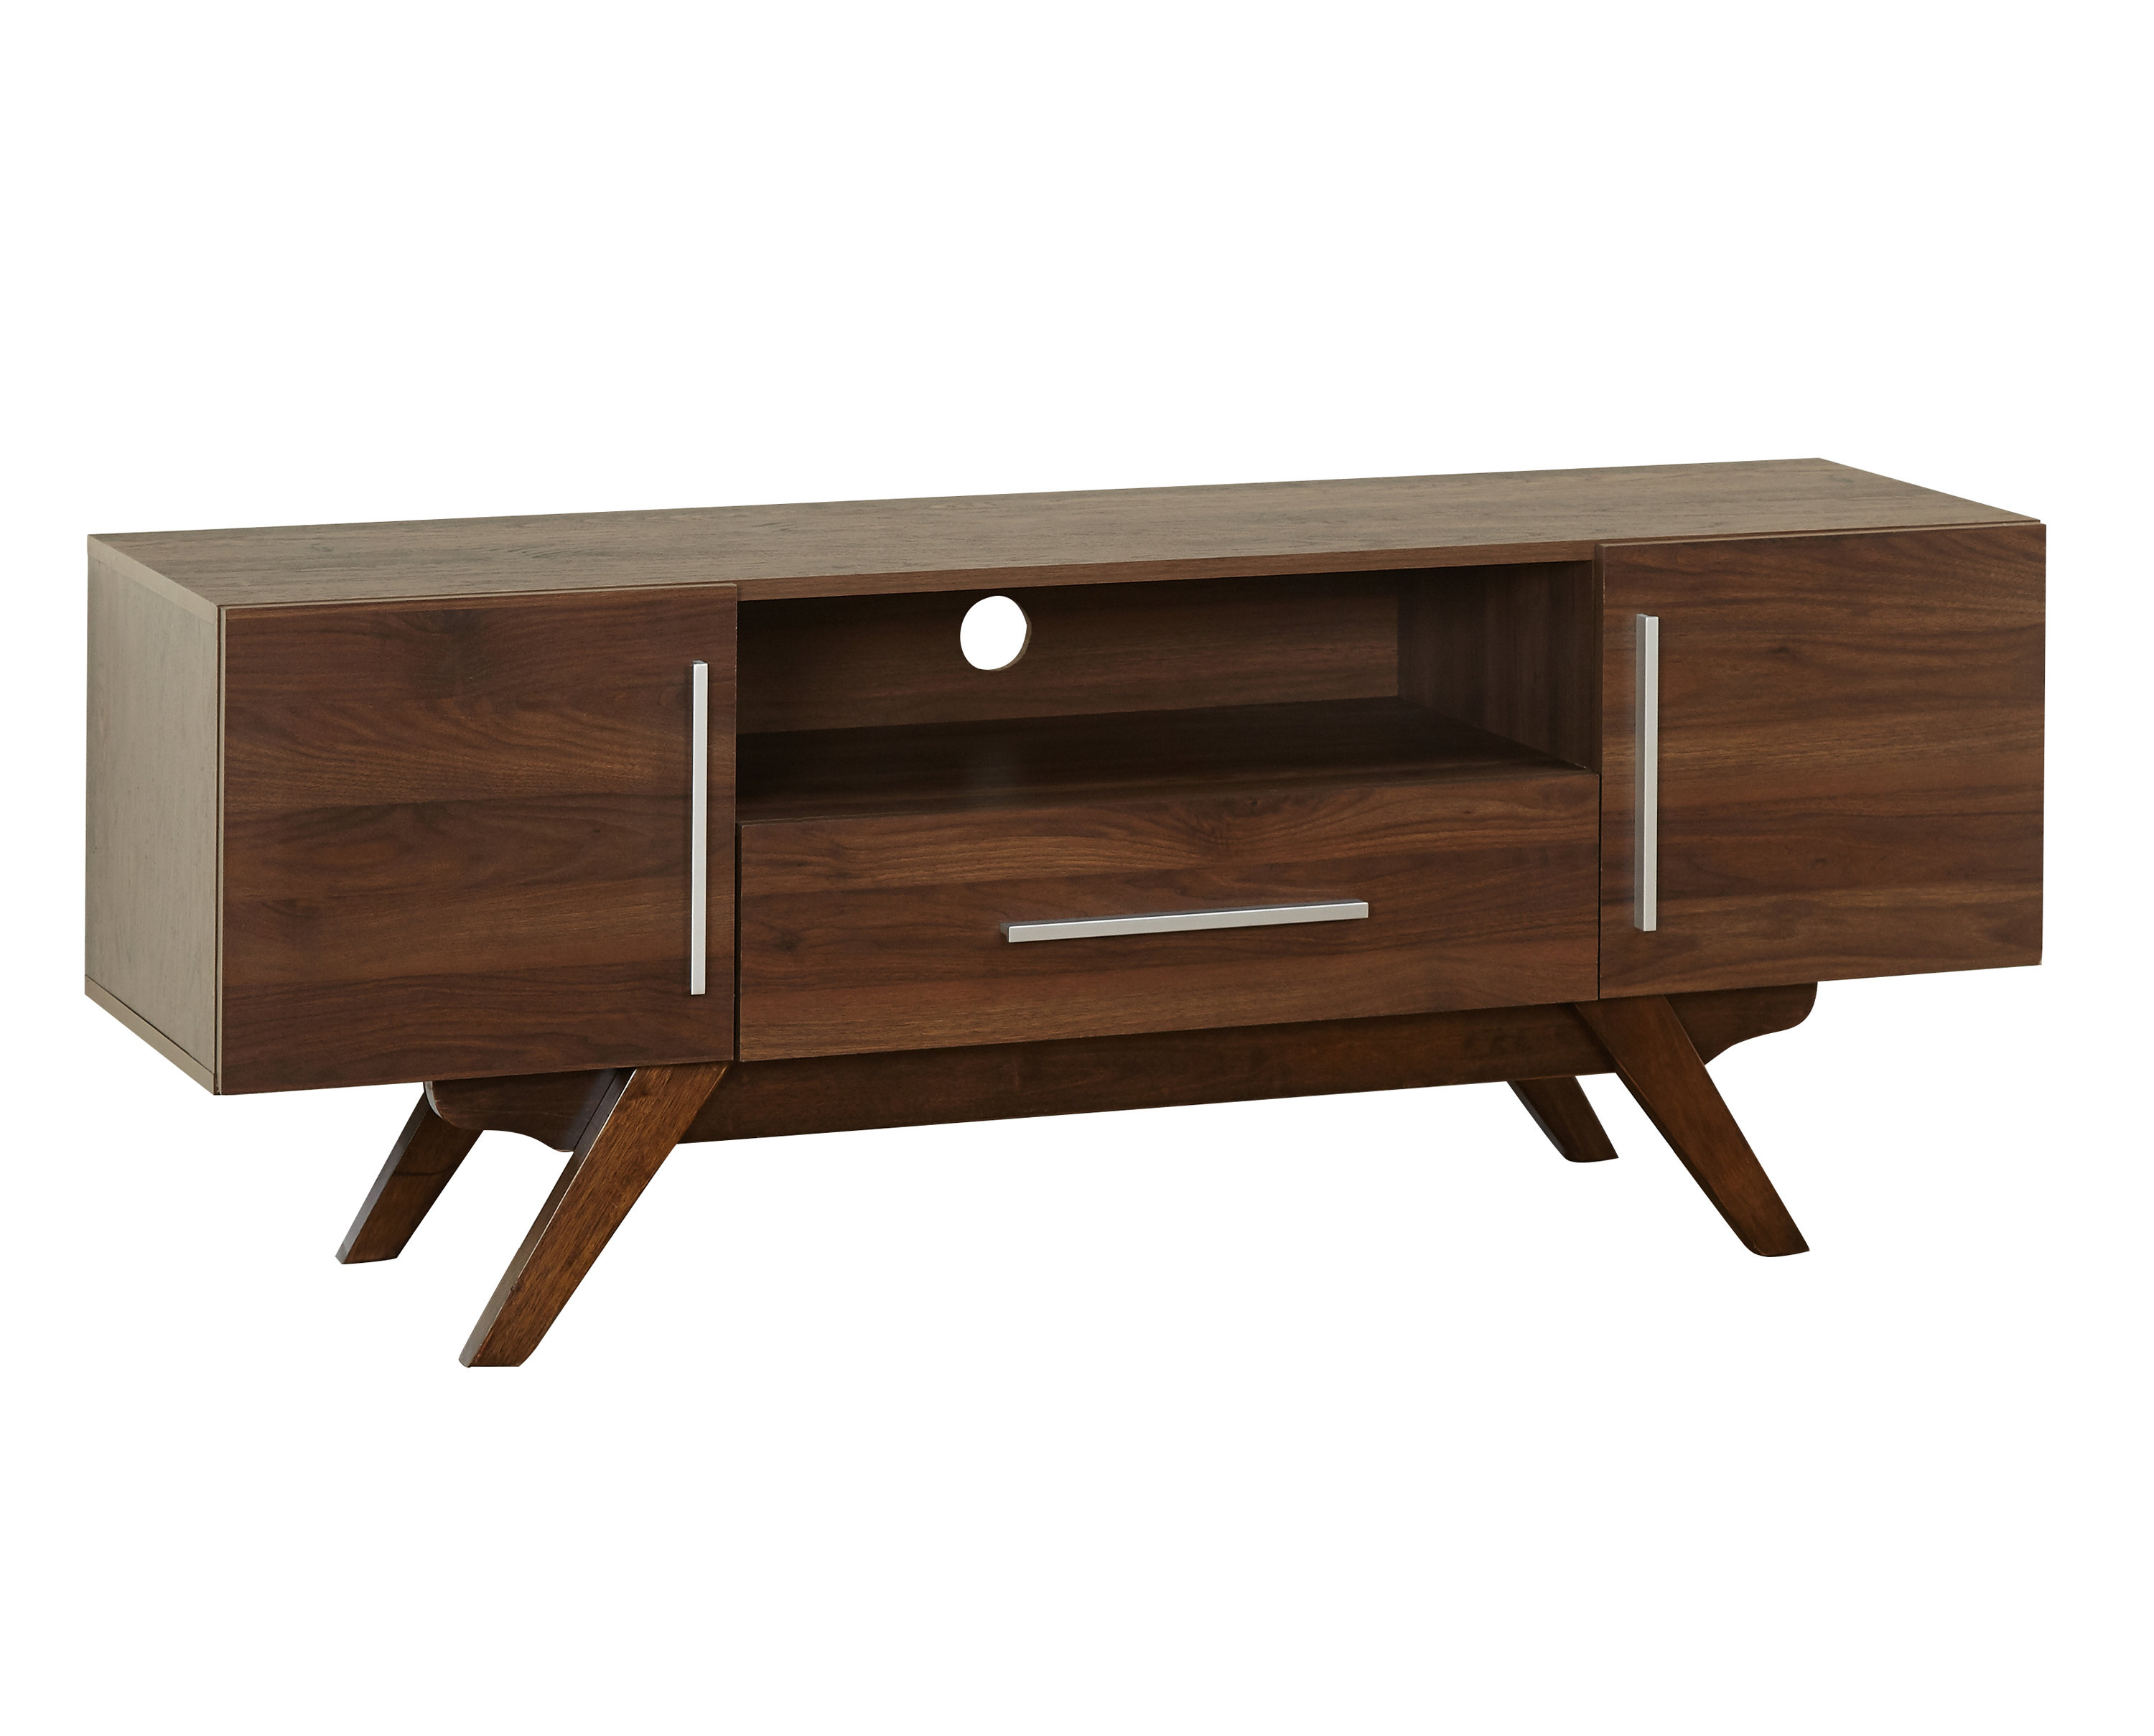 Retro Corner Tv Stands Throughout Trendy Modern & Contemporary Retro Tv Stand (View 13 of 20)